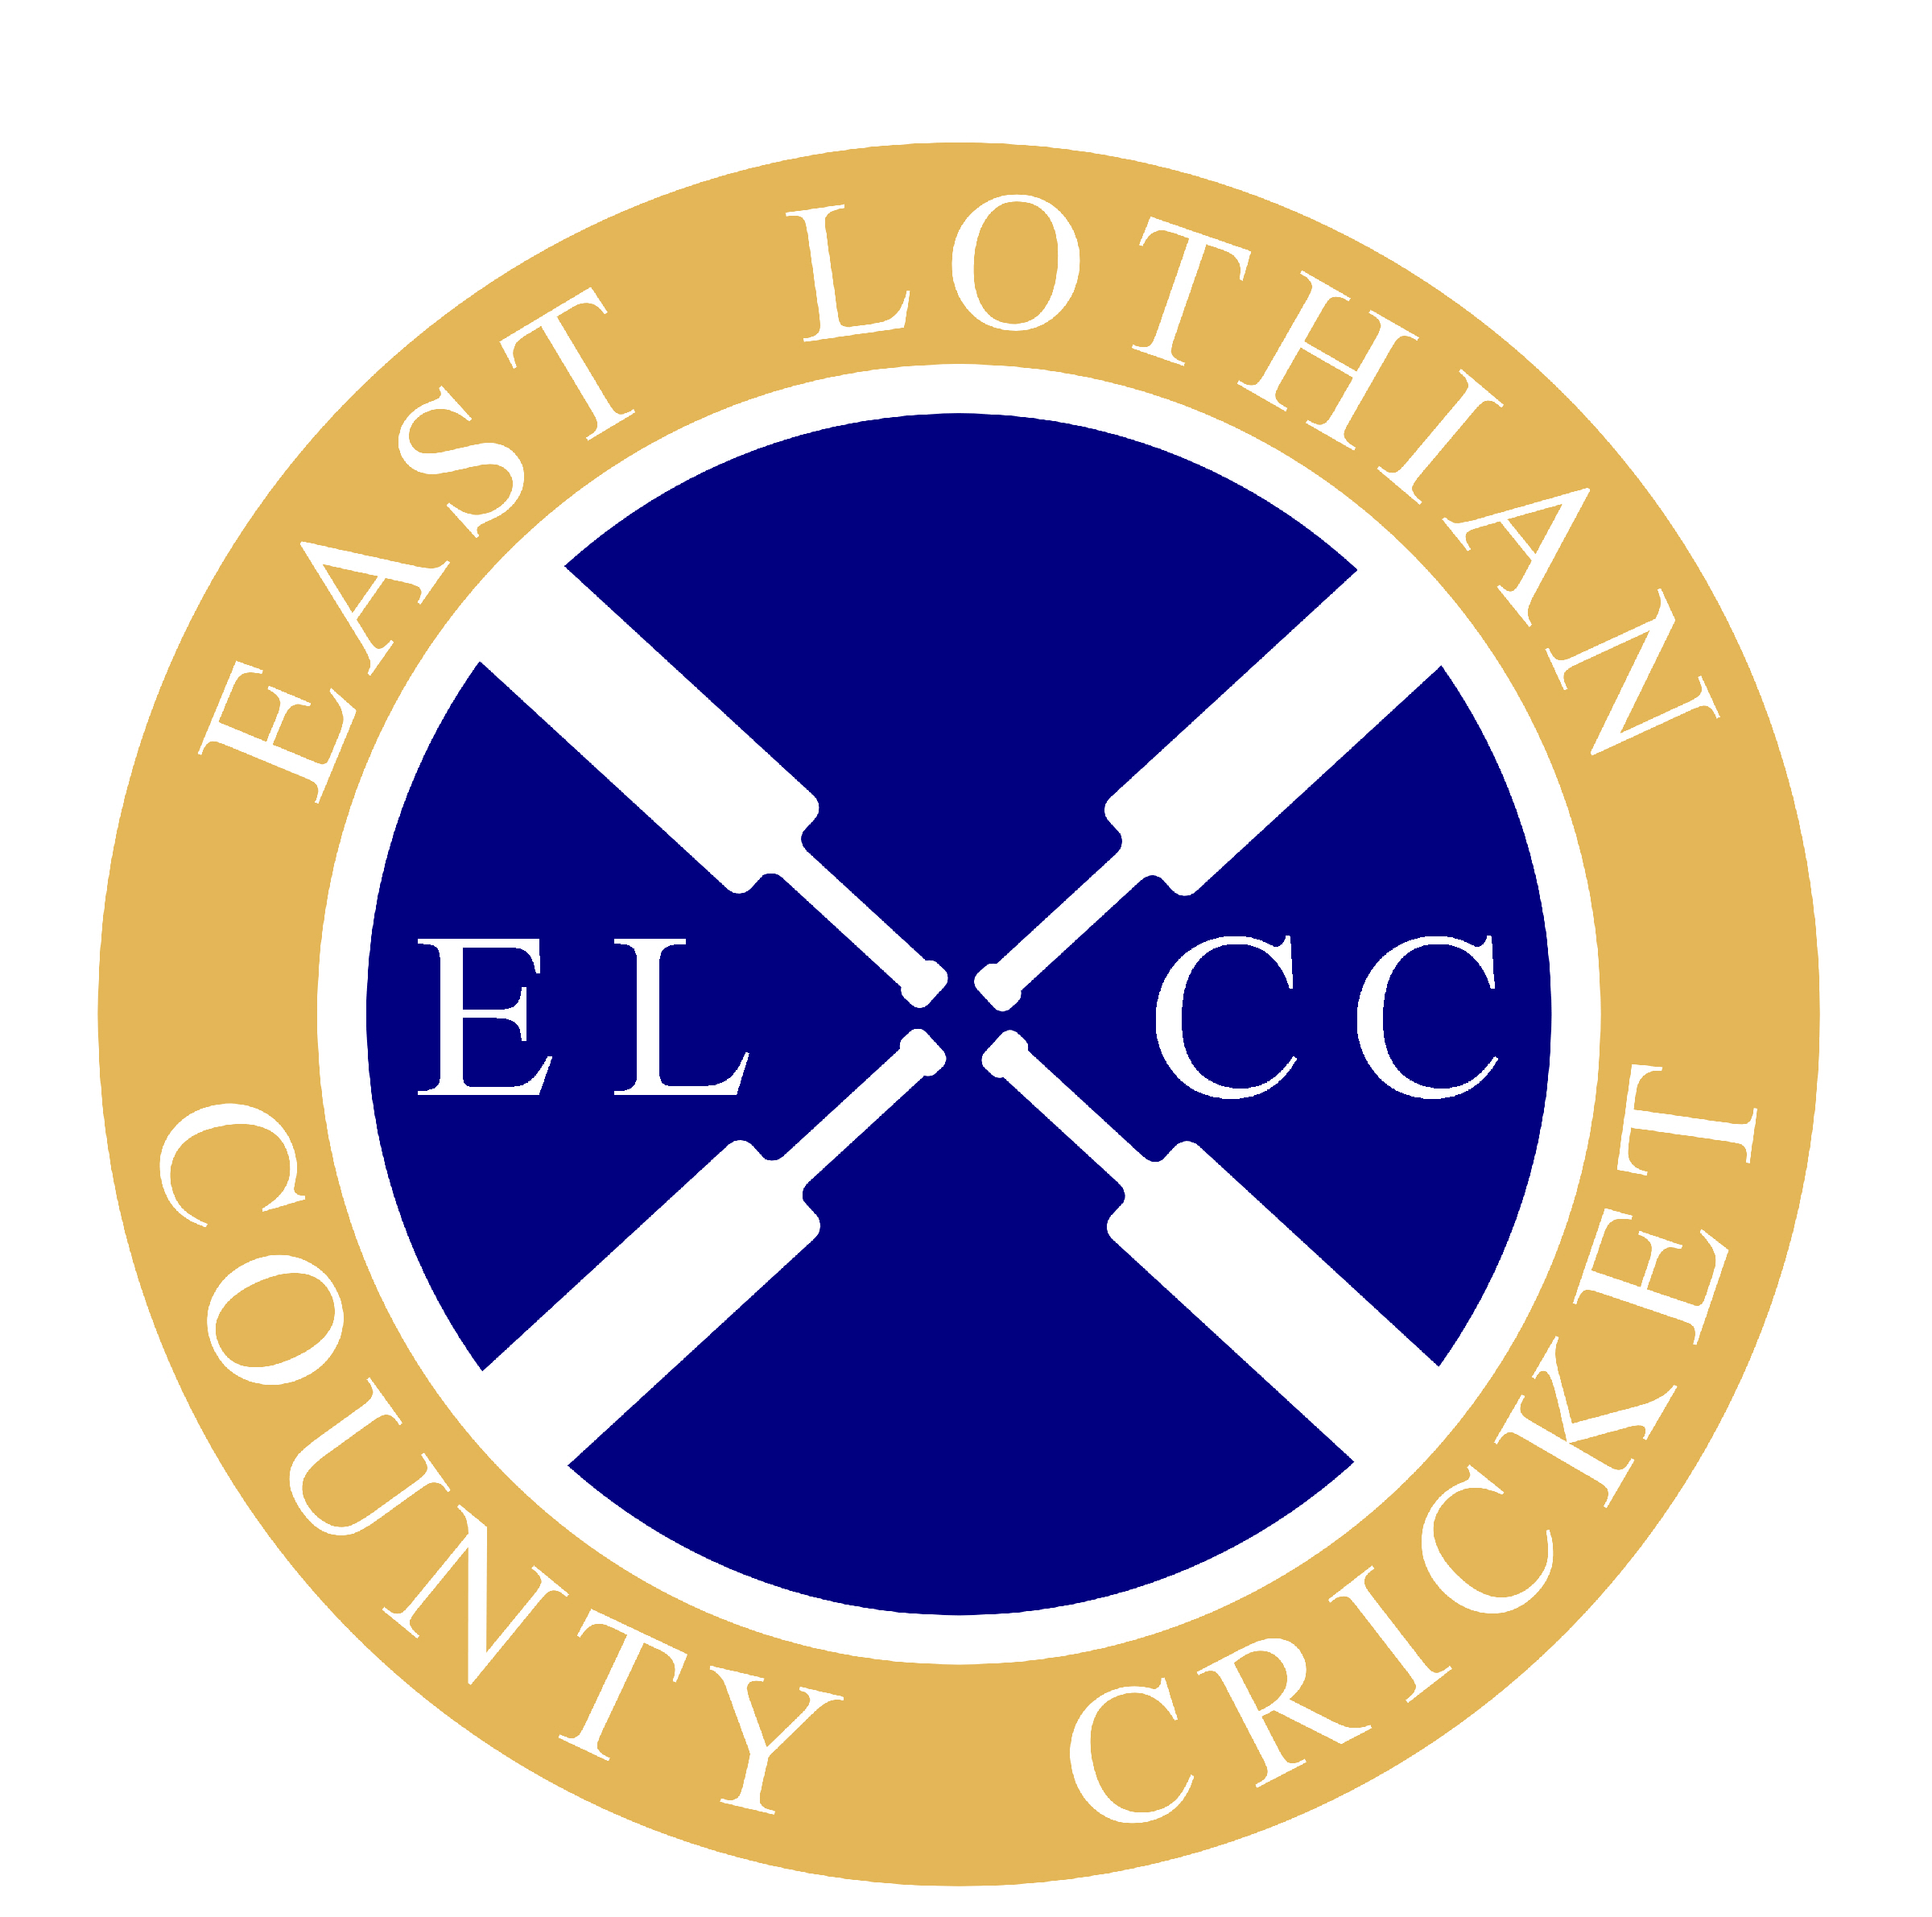 East Lothian County Cricket